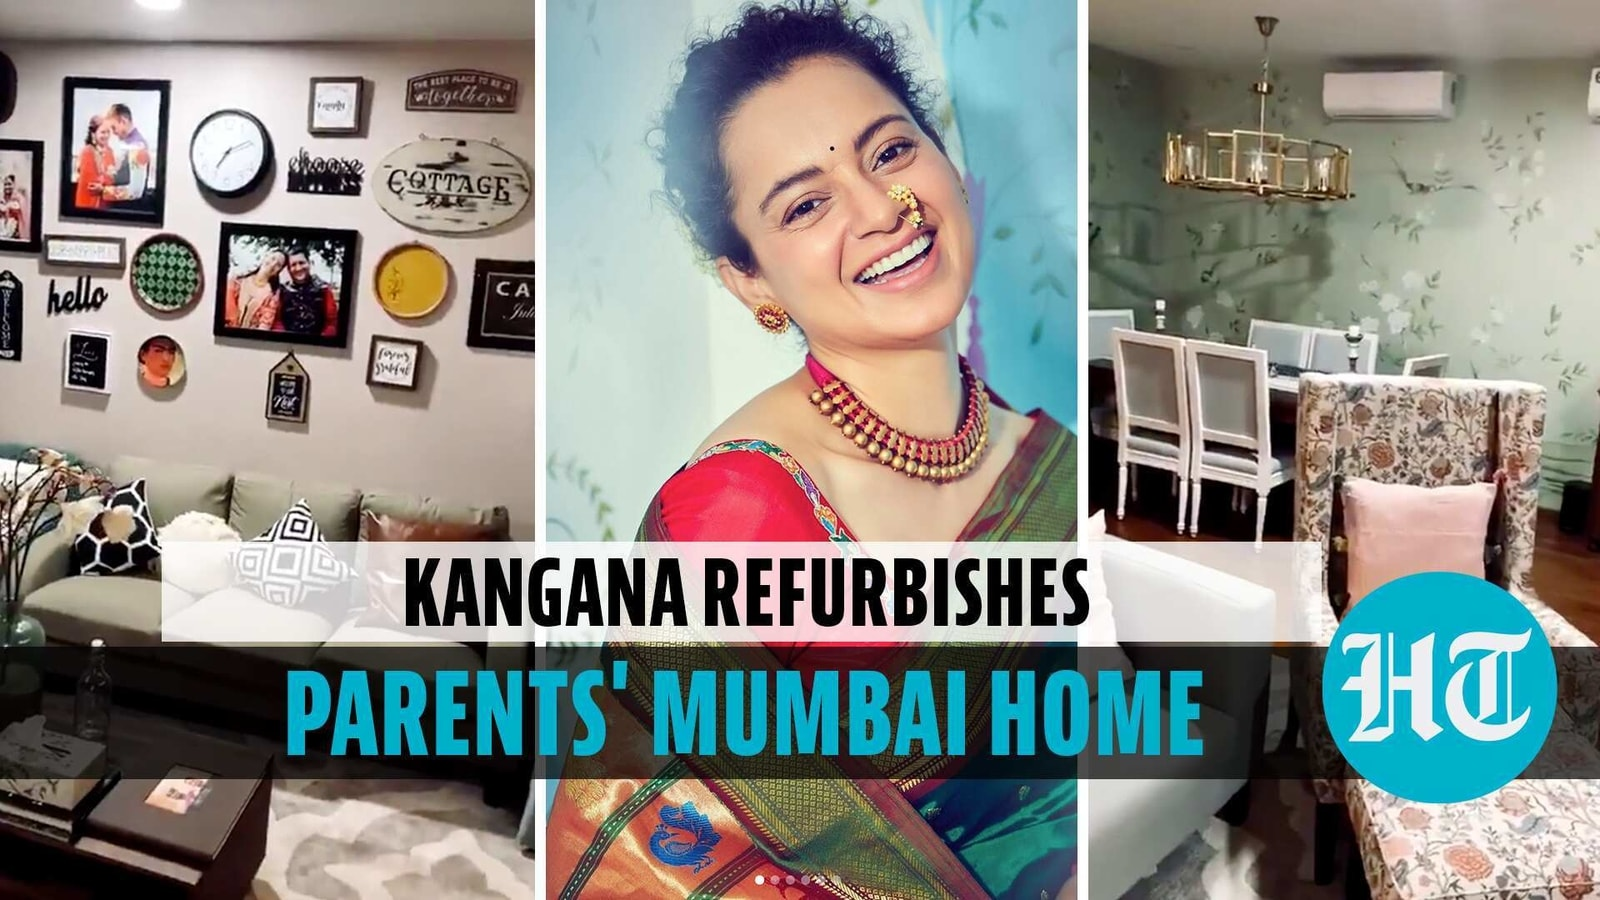 Watch: Kangana gives makeover to parents' Mumbai home, shares before-after look - Hindustan Times